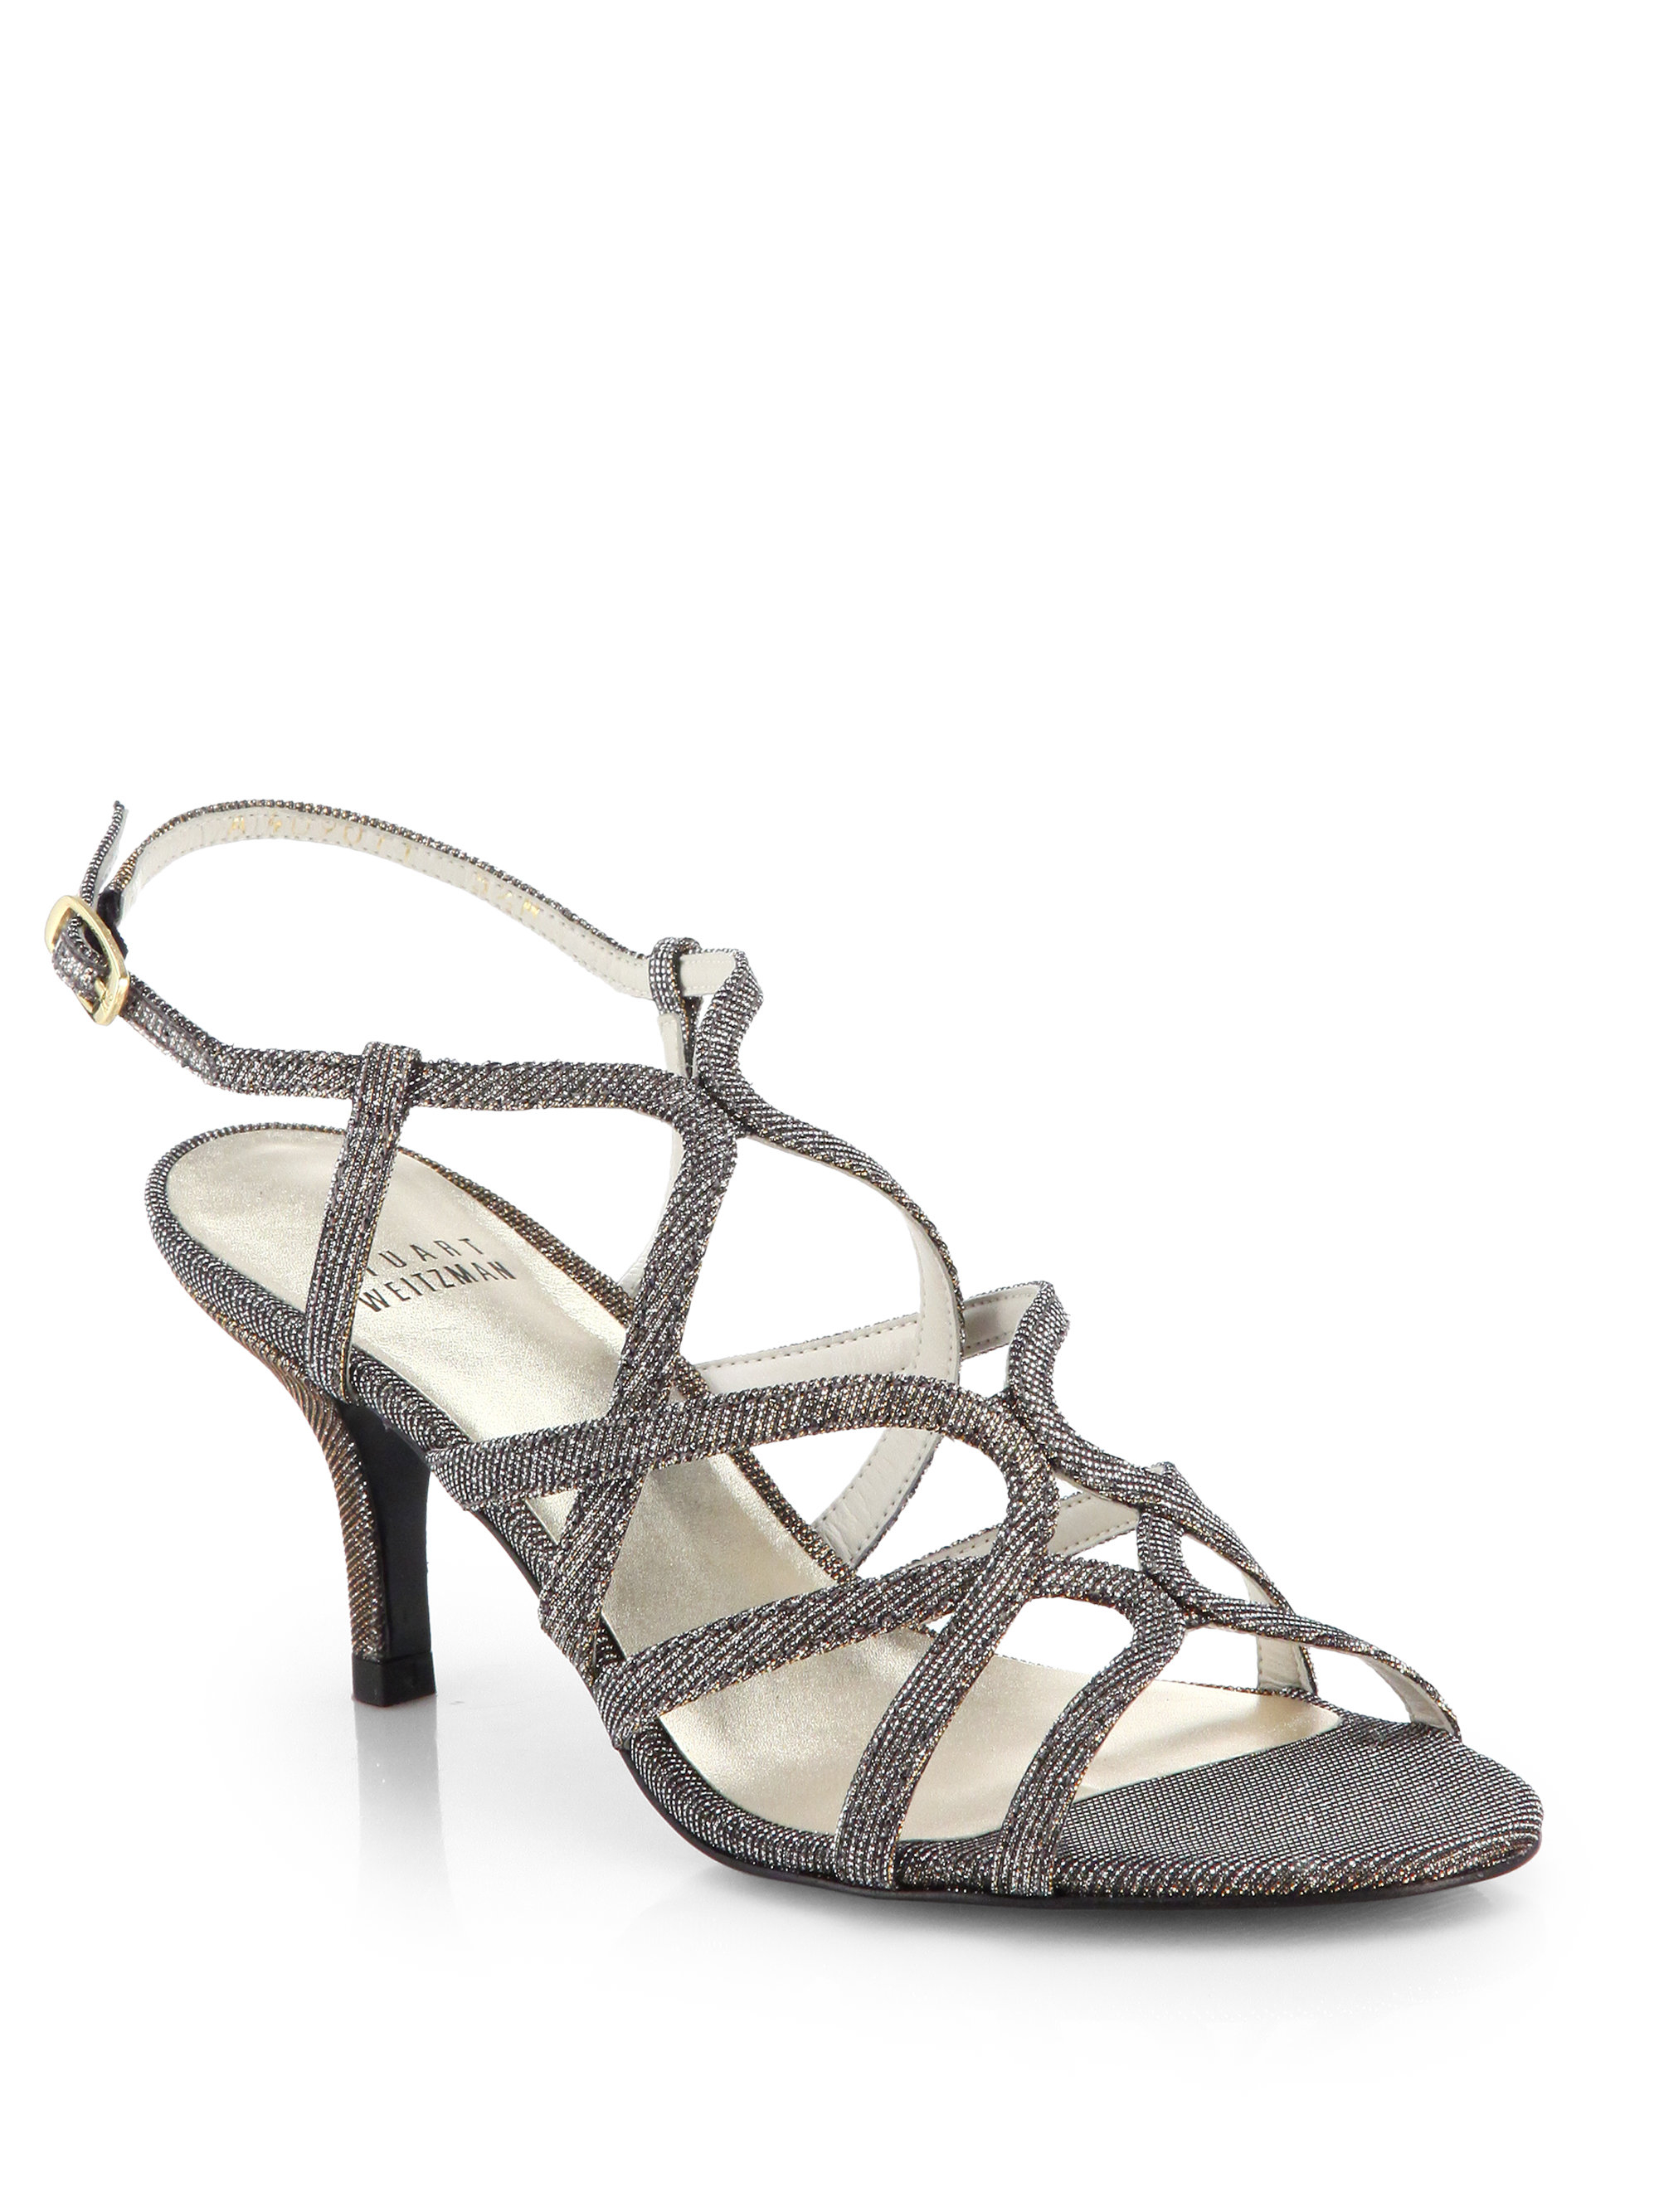 9139c735d Lyst - Stuart Weitzman Turning Up Shimmer Strappy Sandals in Gray